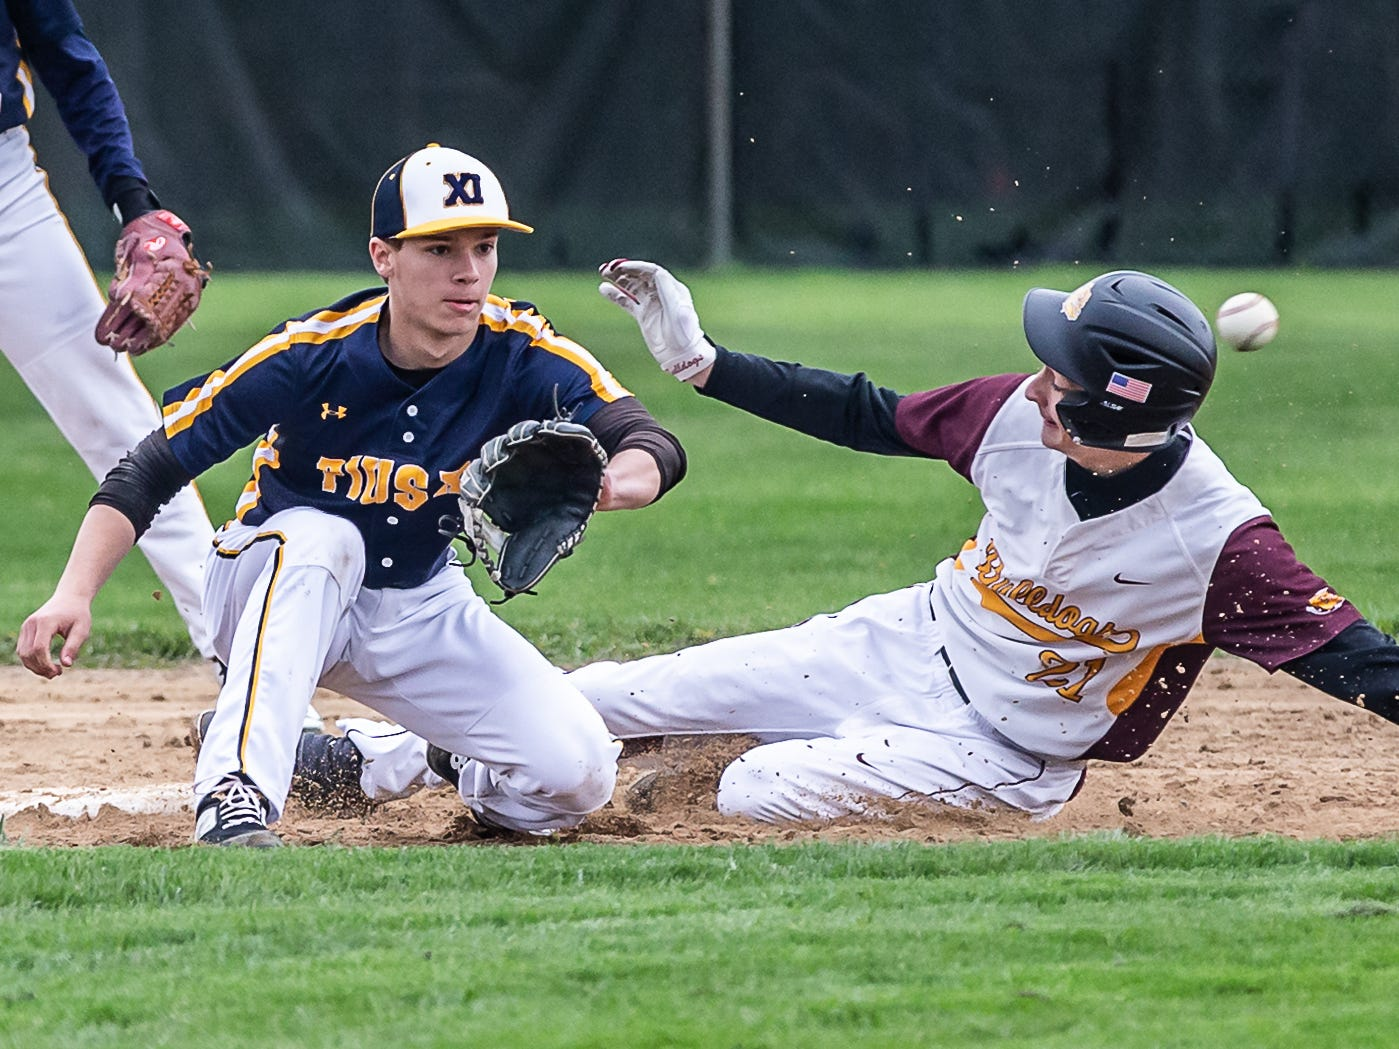 West Allis Central's Anthony LoCicero (21) steals second base as Pius XI's Logan Rademan (1) waits on the throw at West Allis on Wednesday, May, 8, 2019.